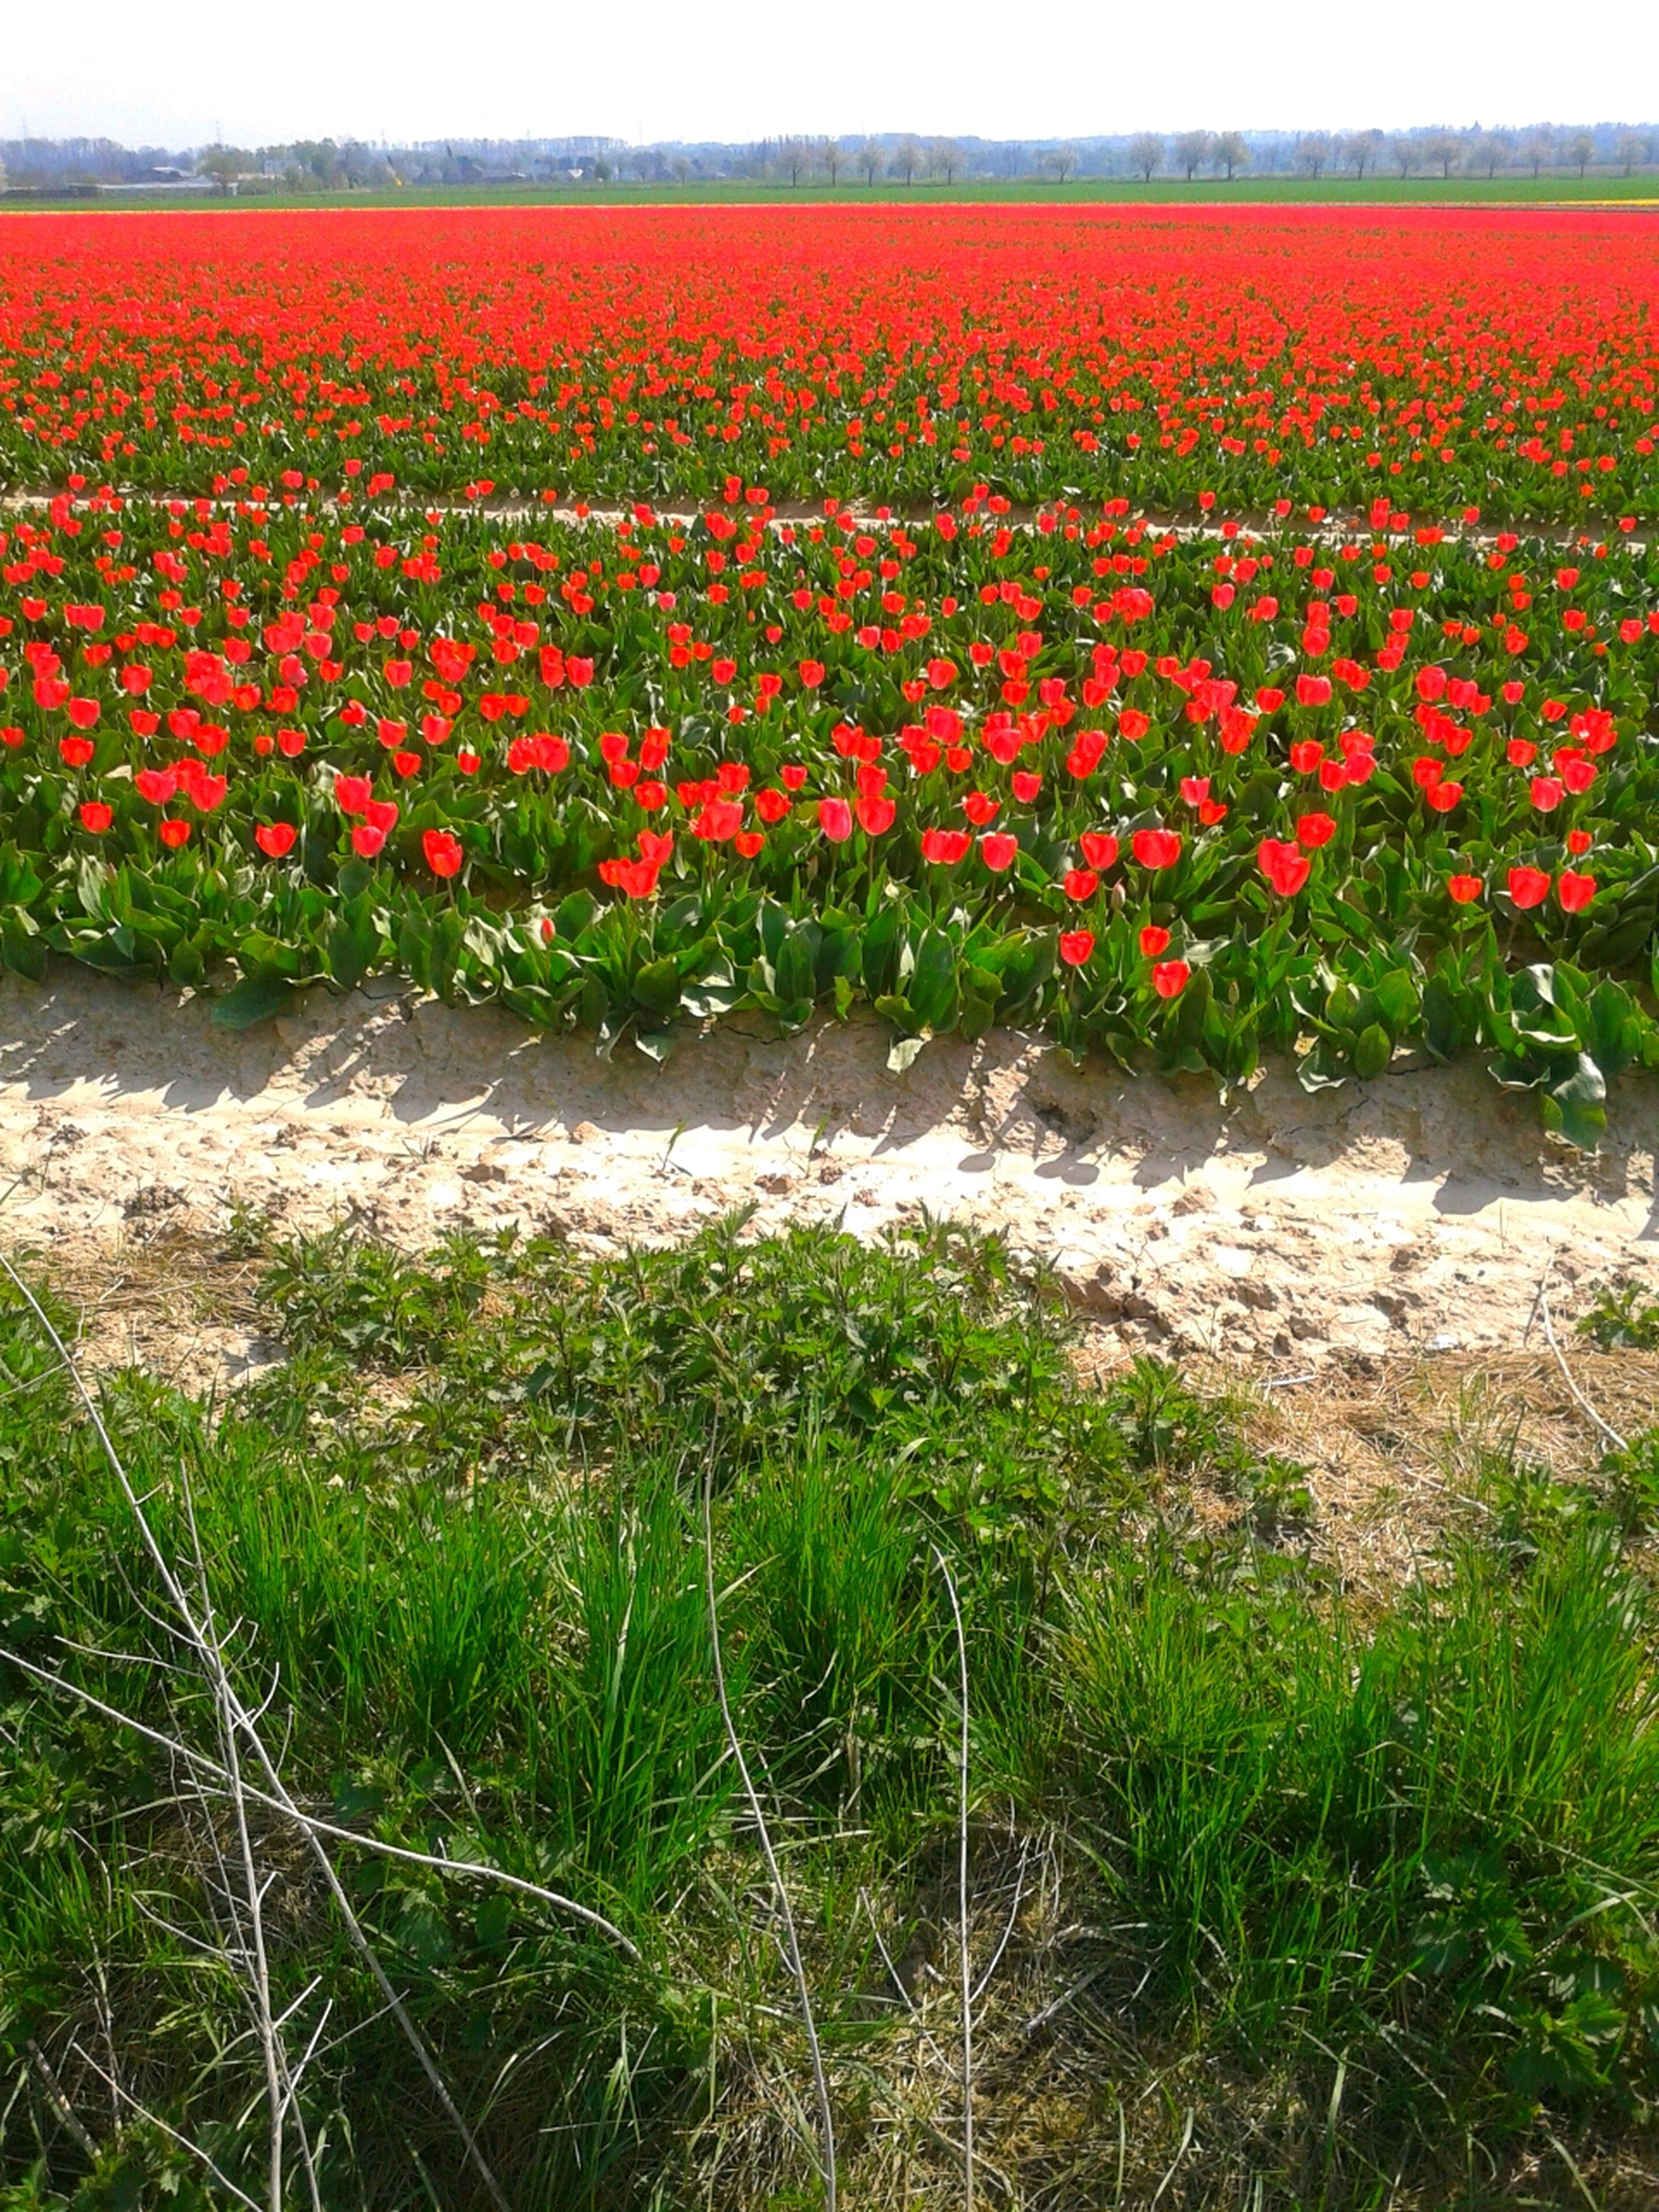 flower, field, freshness, growth, beauty in nature, nature, red, landscape, fragility, plant, abundance, tranquil scene, rural scene, tranquility, grass, flowerbed, blooming, scenics, agriculture, poppy